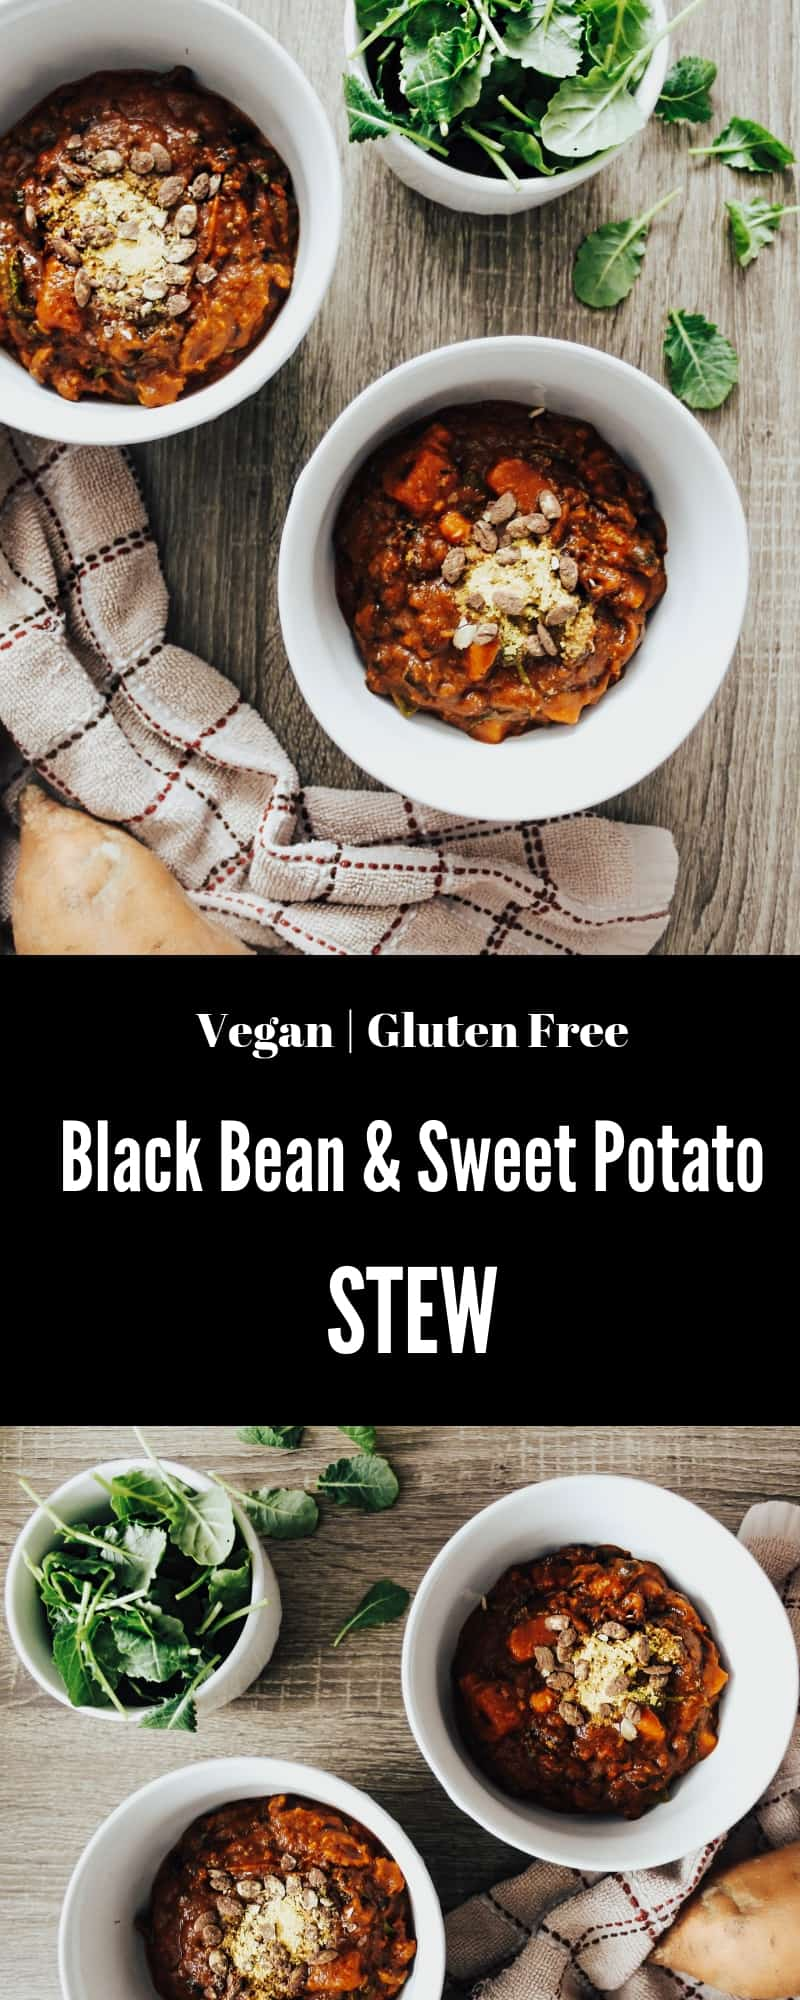 Not only is this Black Bean & Sweet Potato Stew, gluten free, dairy free, vegan, & extremely warming, but it also is anti-inflammatory, due to the turmeric!